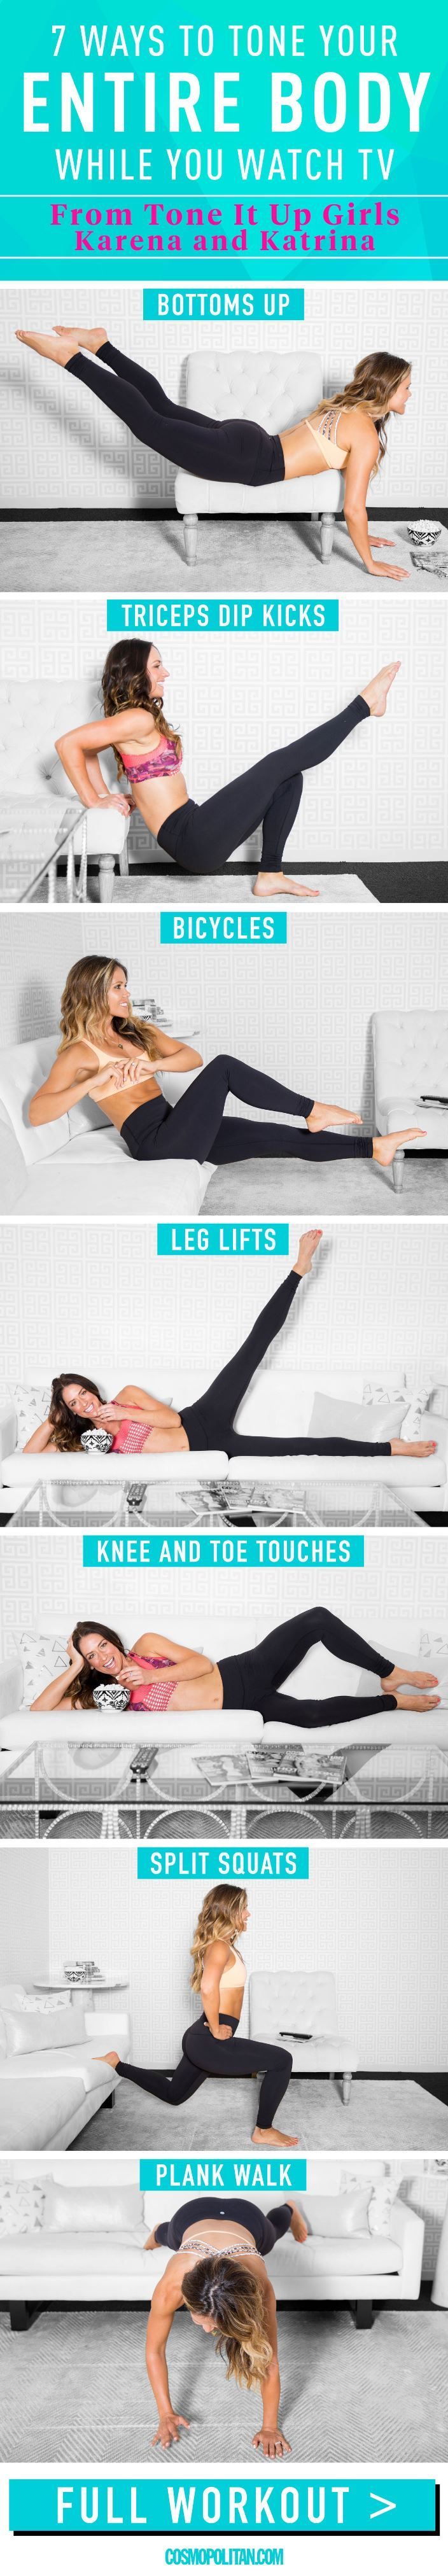 7 Ways To Tone Your Entire Body